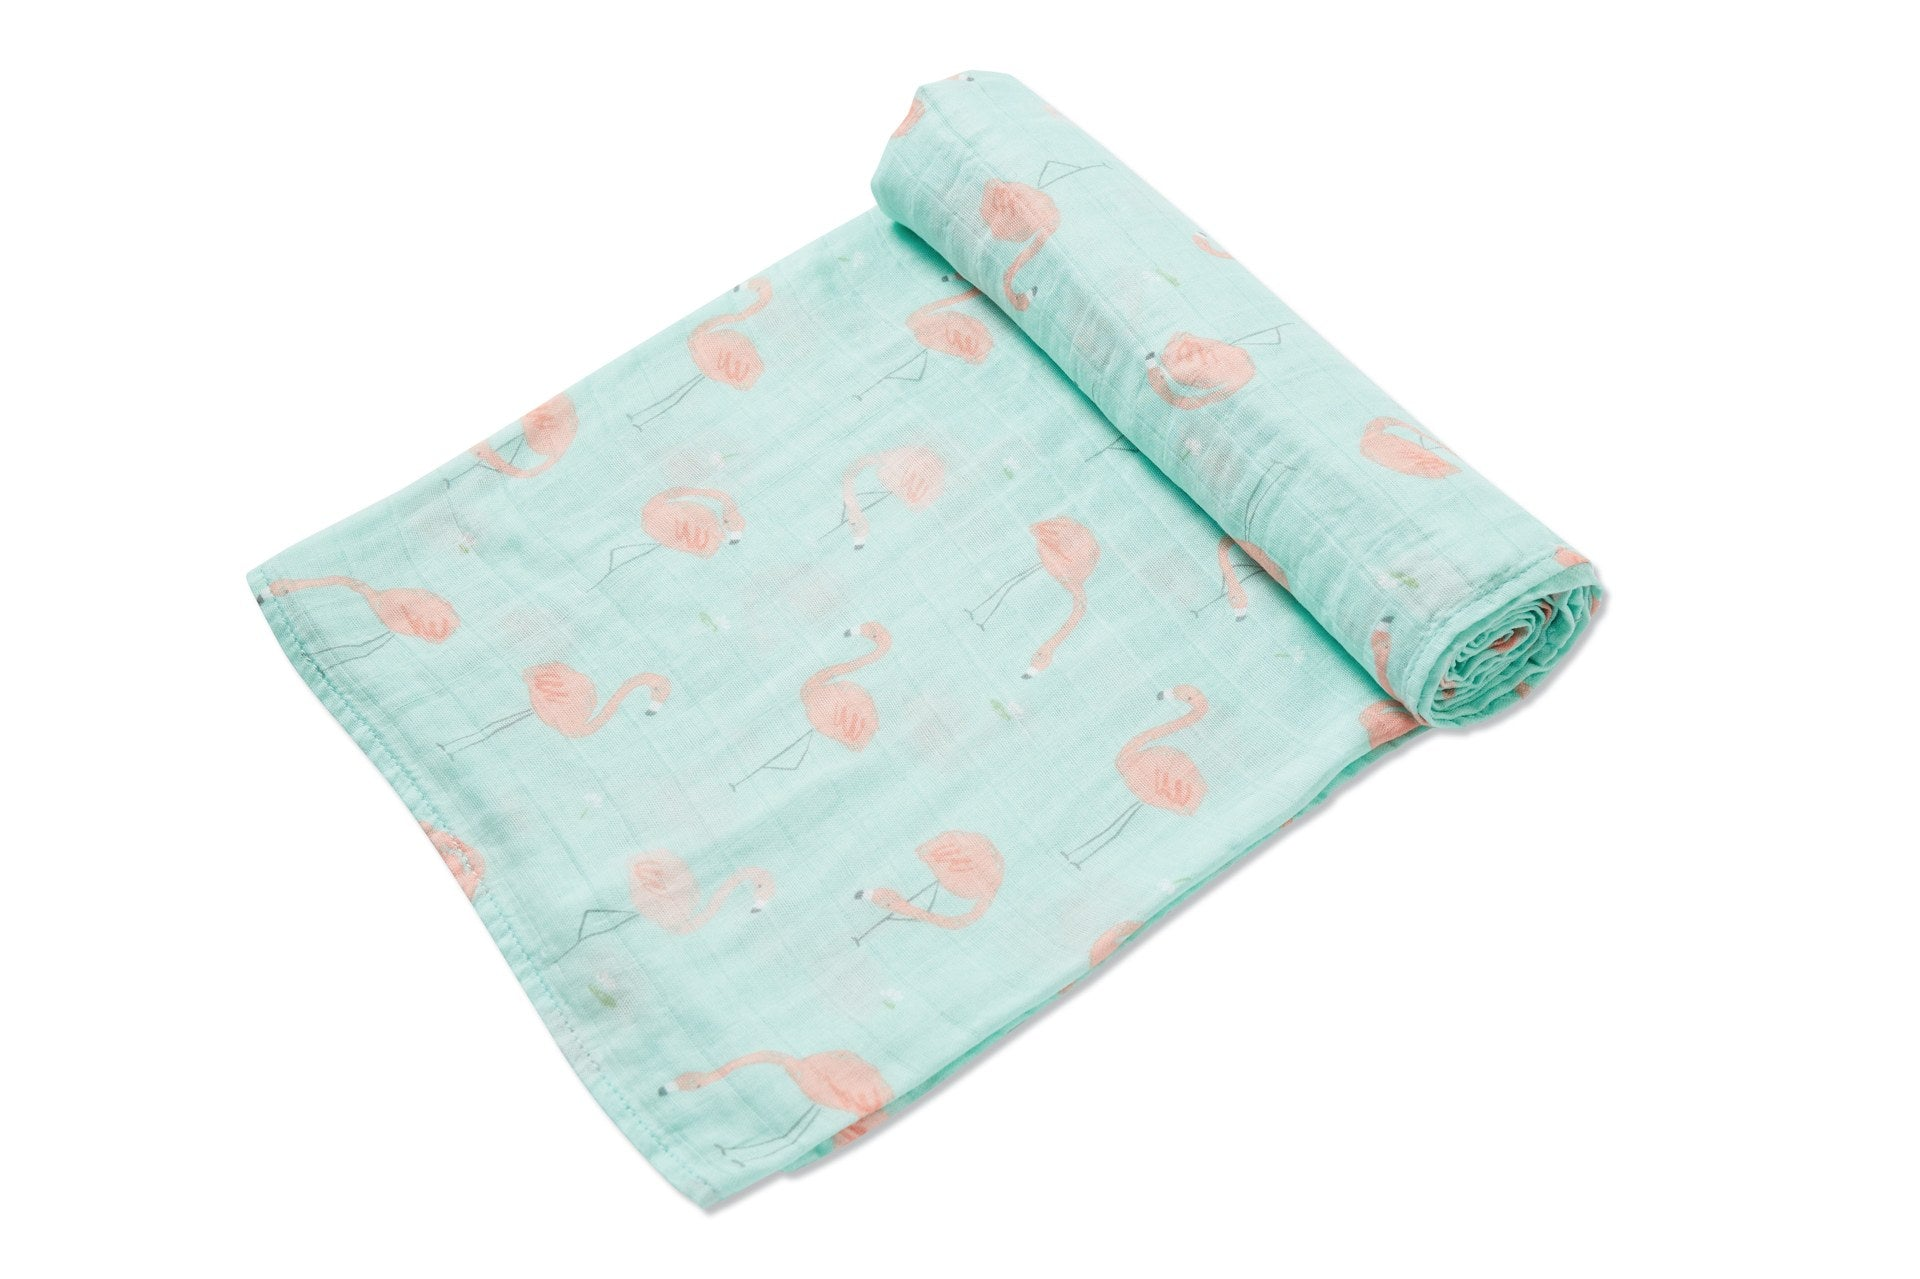 Flamingo - Muslin Swaddle Blanket